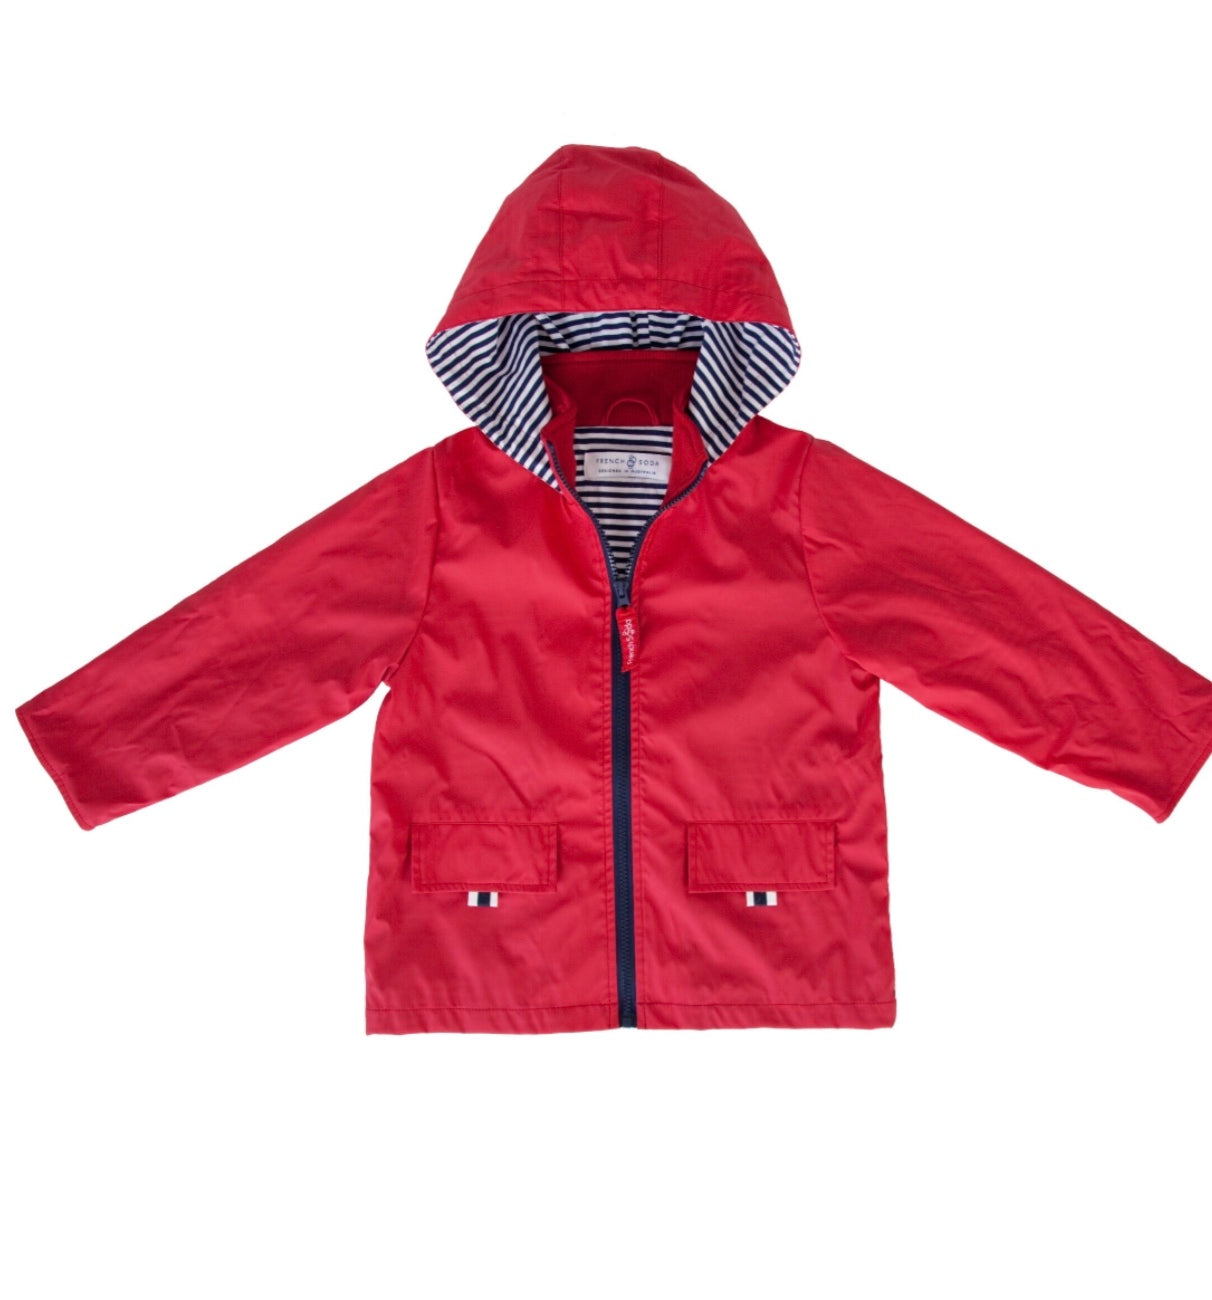 French Soda Red Zip Unisex Raincoat